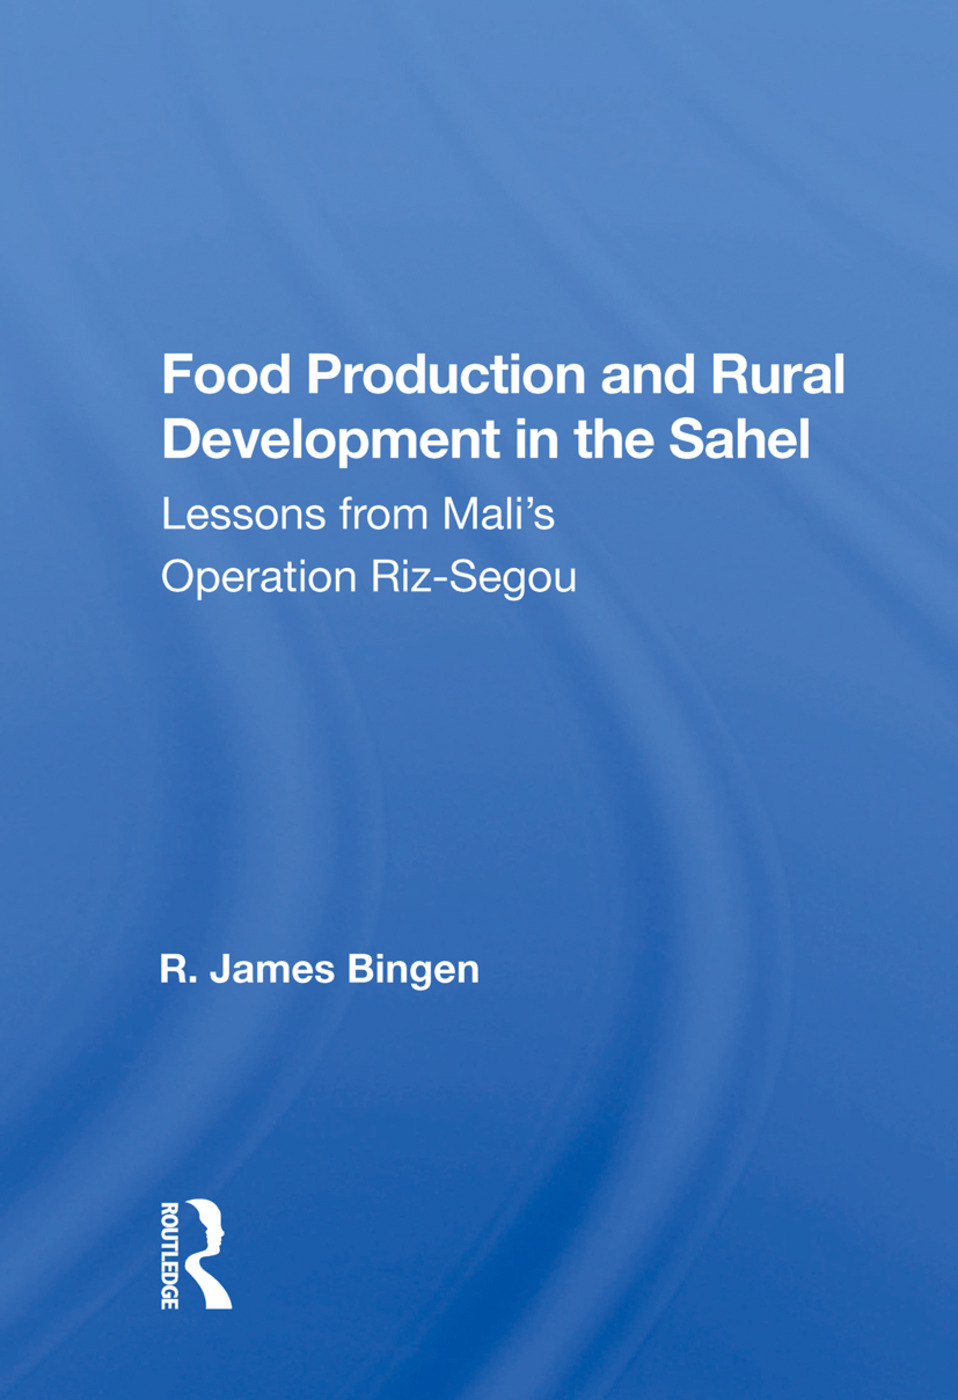 Food Production and Rural Development in the Sahel